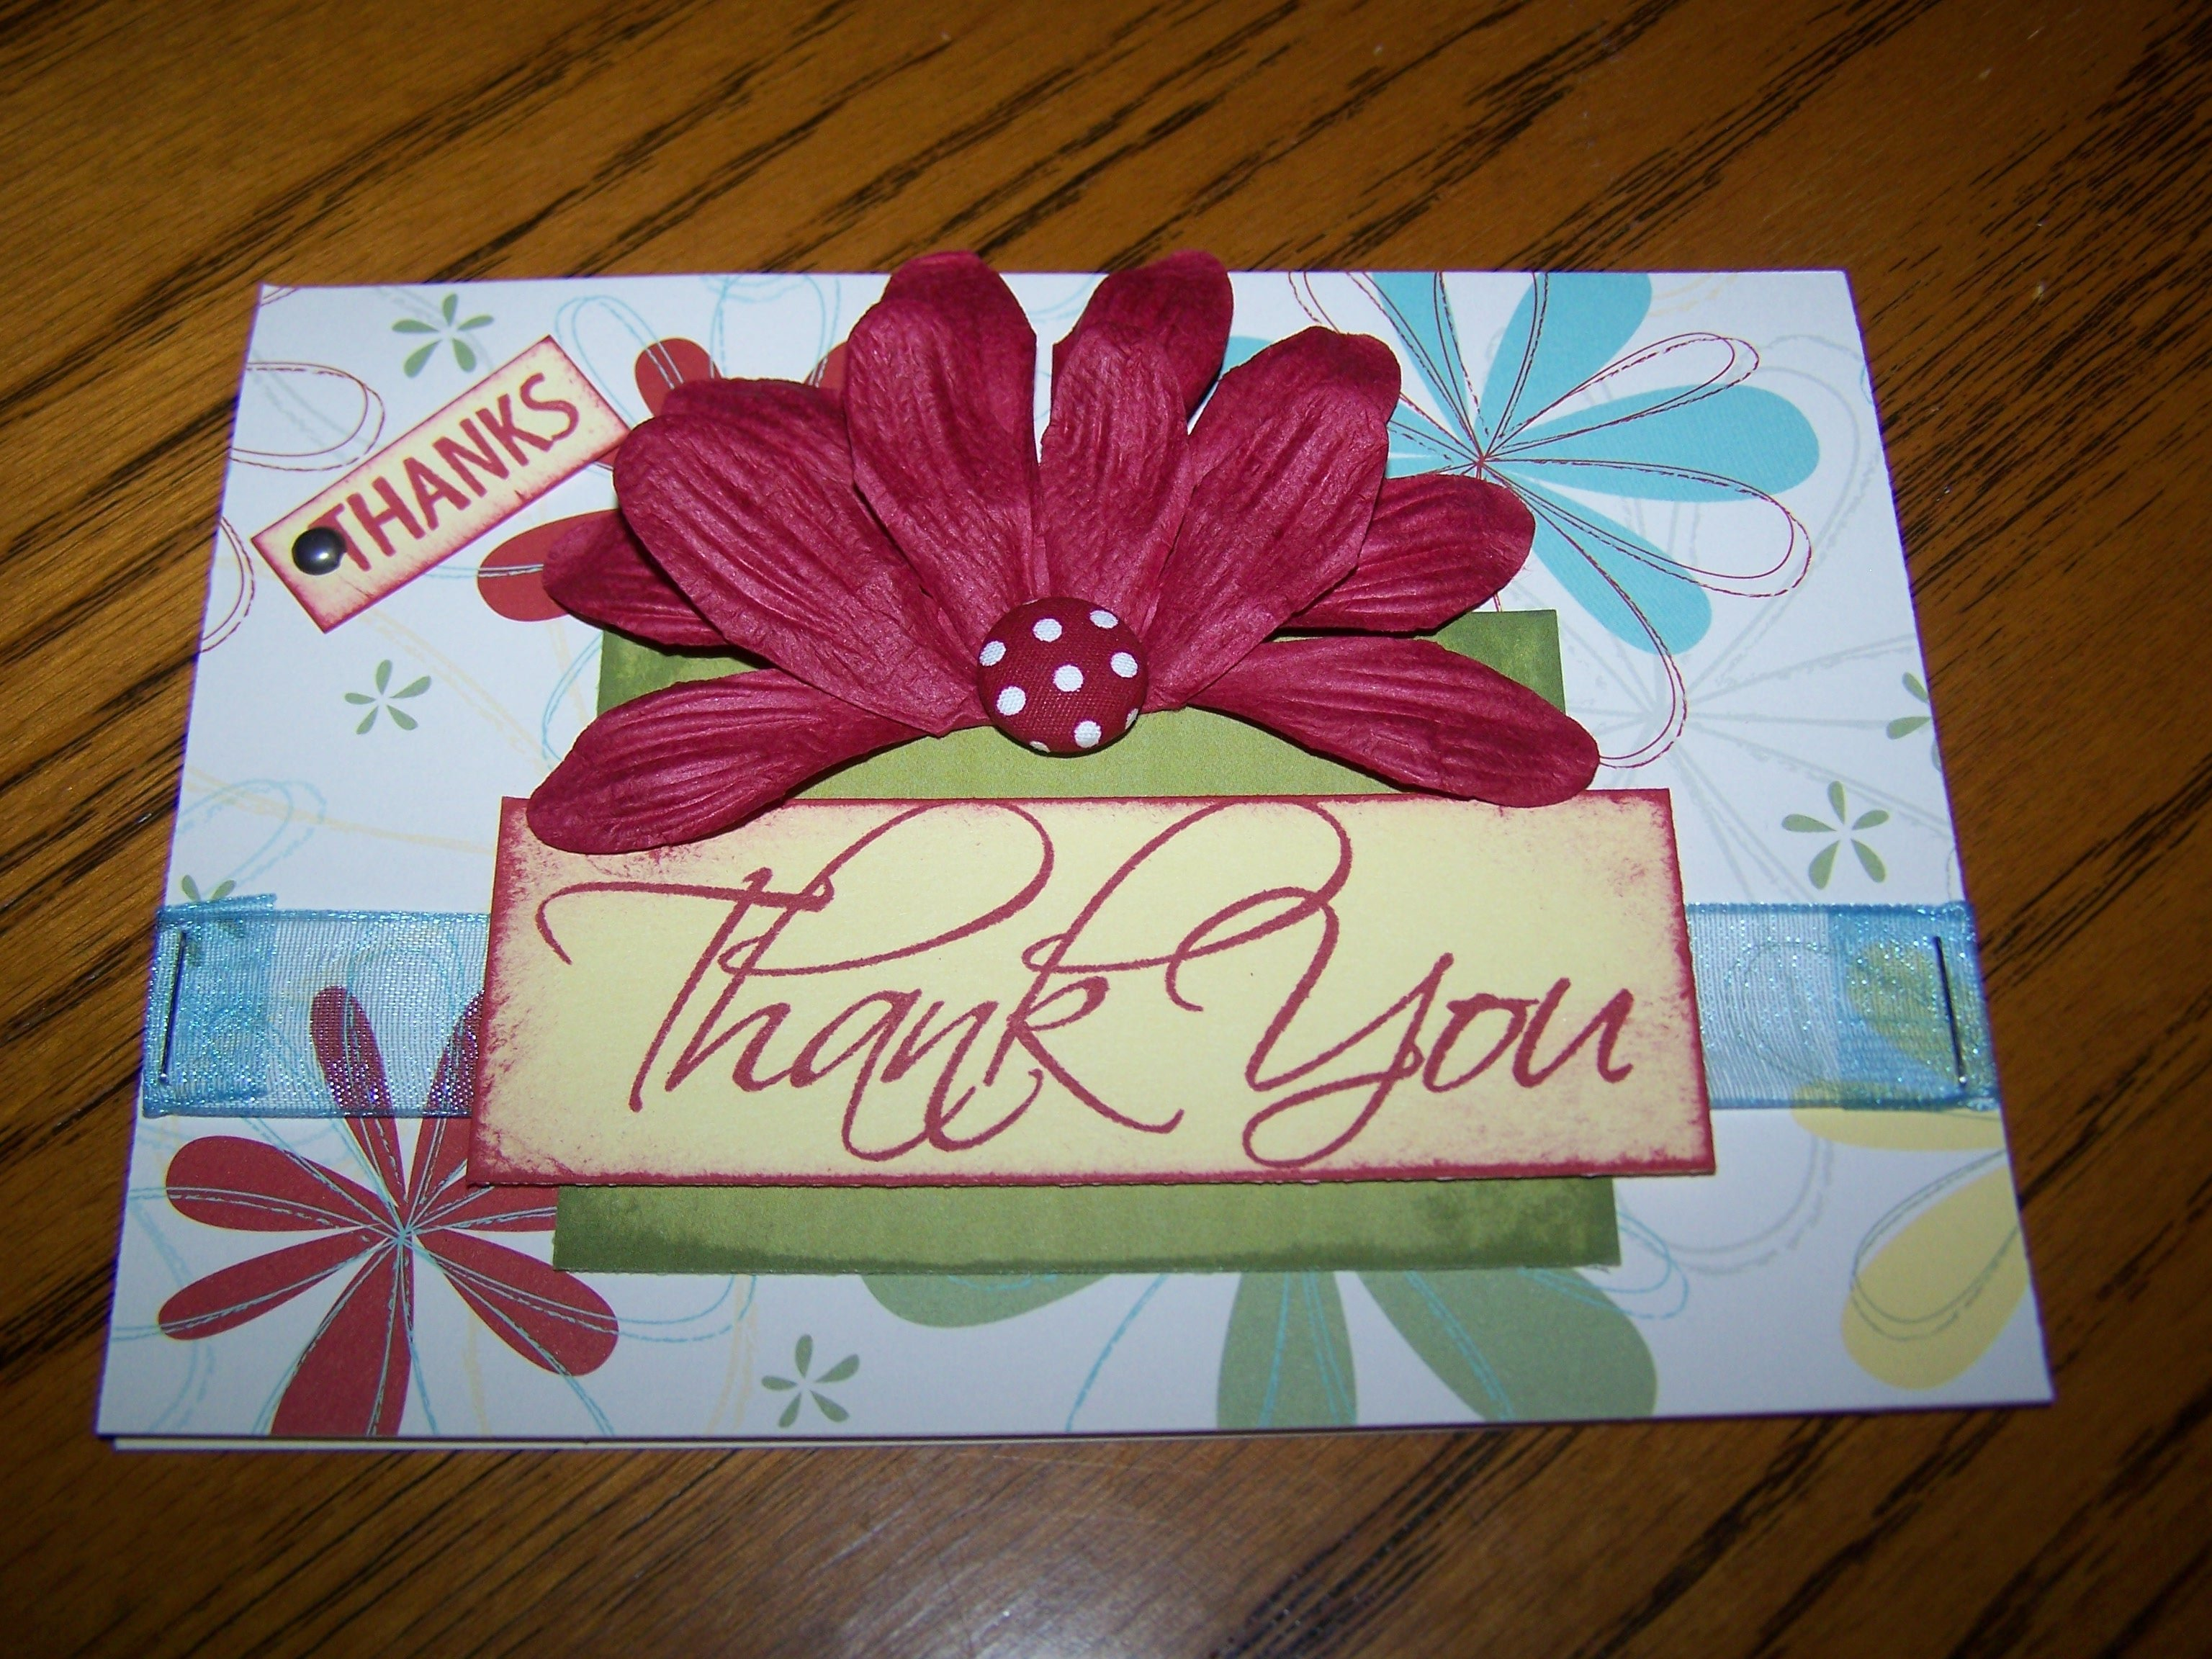 10 attractive handmade thank you cards ideas 2020